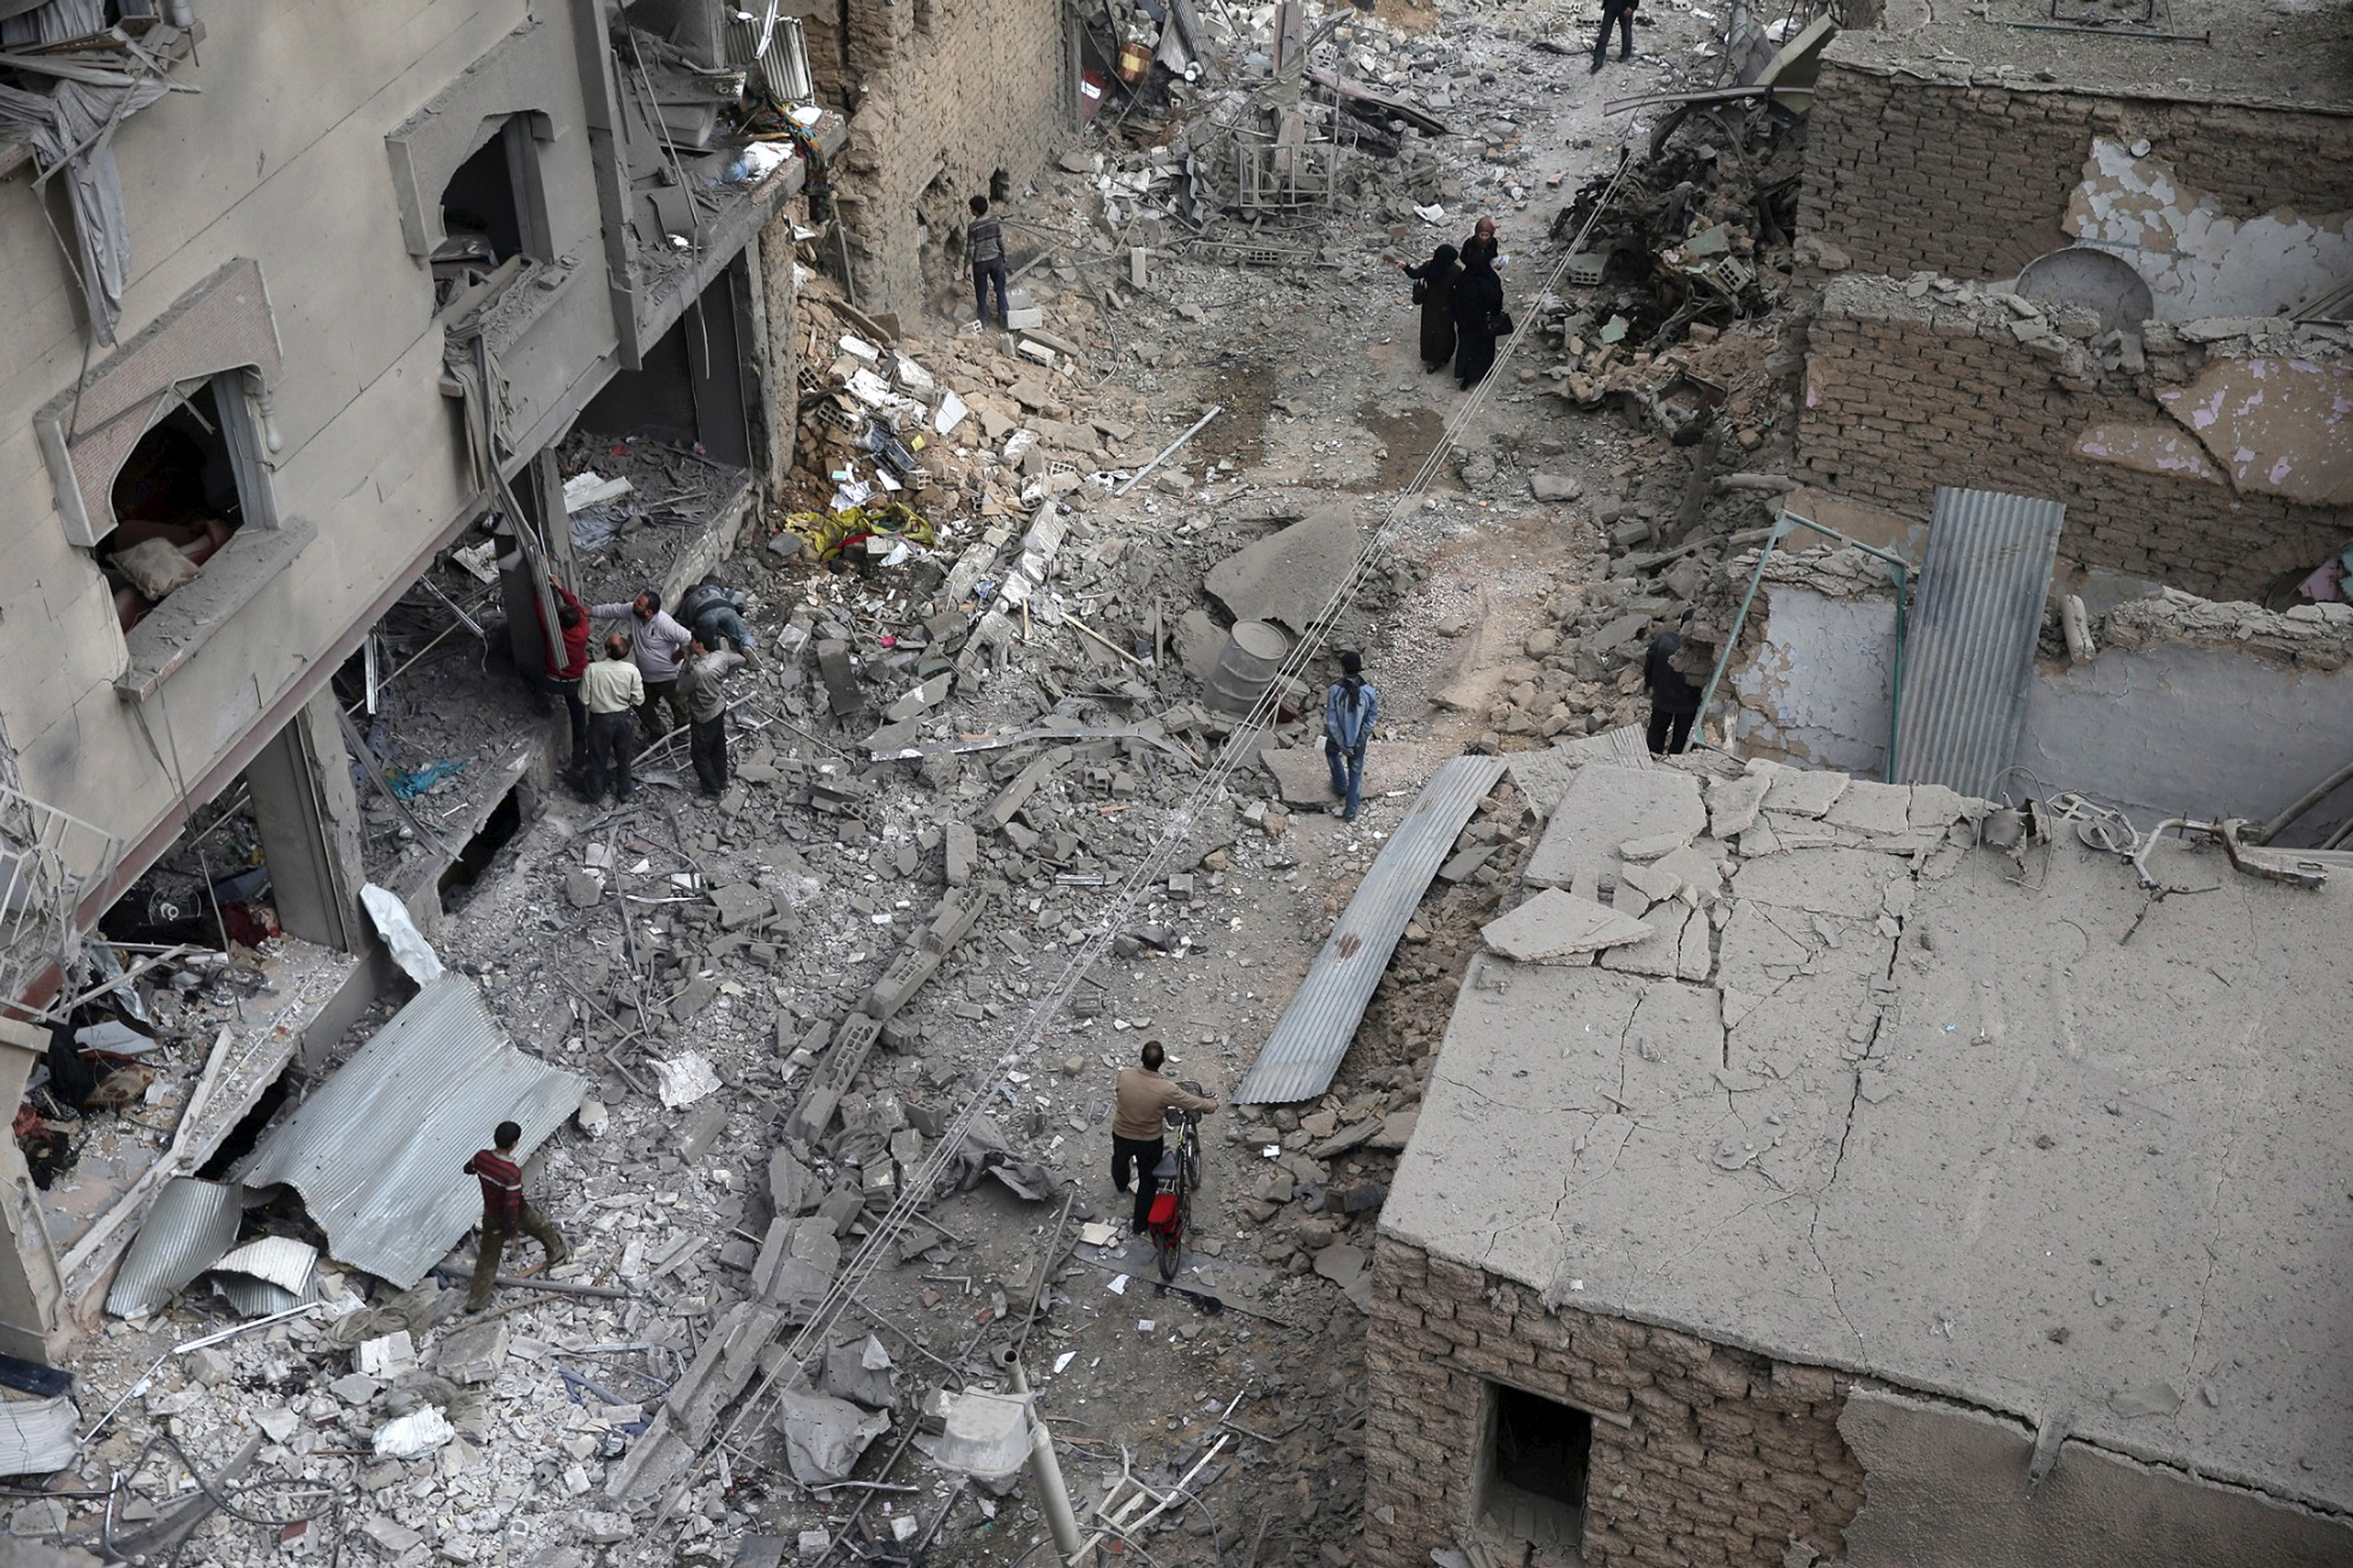 Residents inspect damage from what activists said was an airstrike by forces loyal to Syria's President Bashar al-Assad on the main field hospital in the town of Douma, north-east of Damascus, on Oct. 29, 2015.